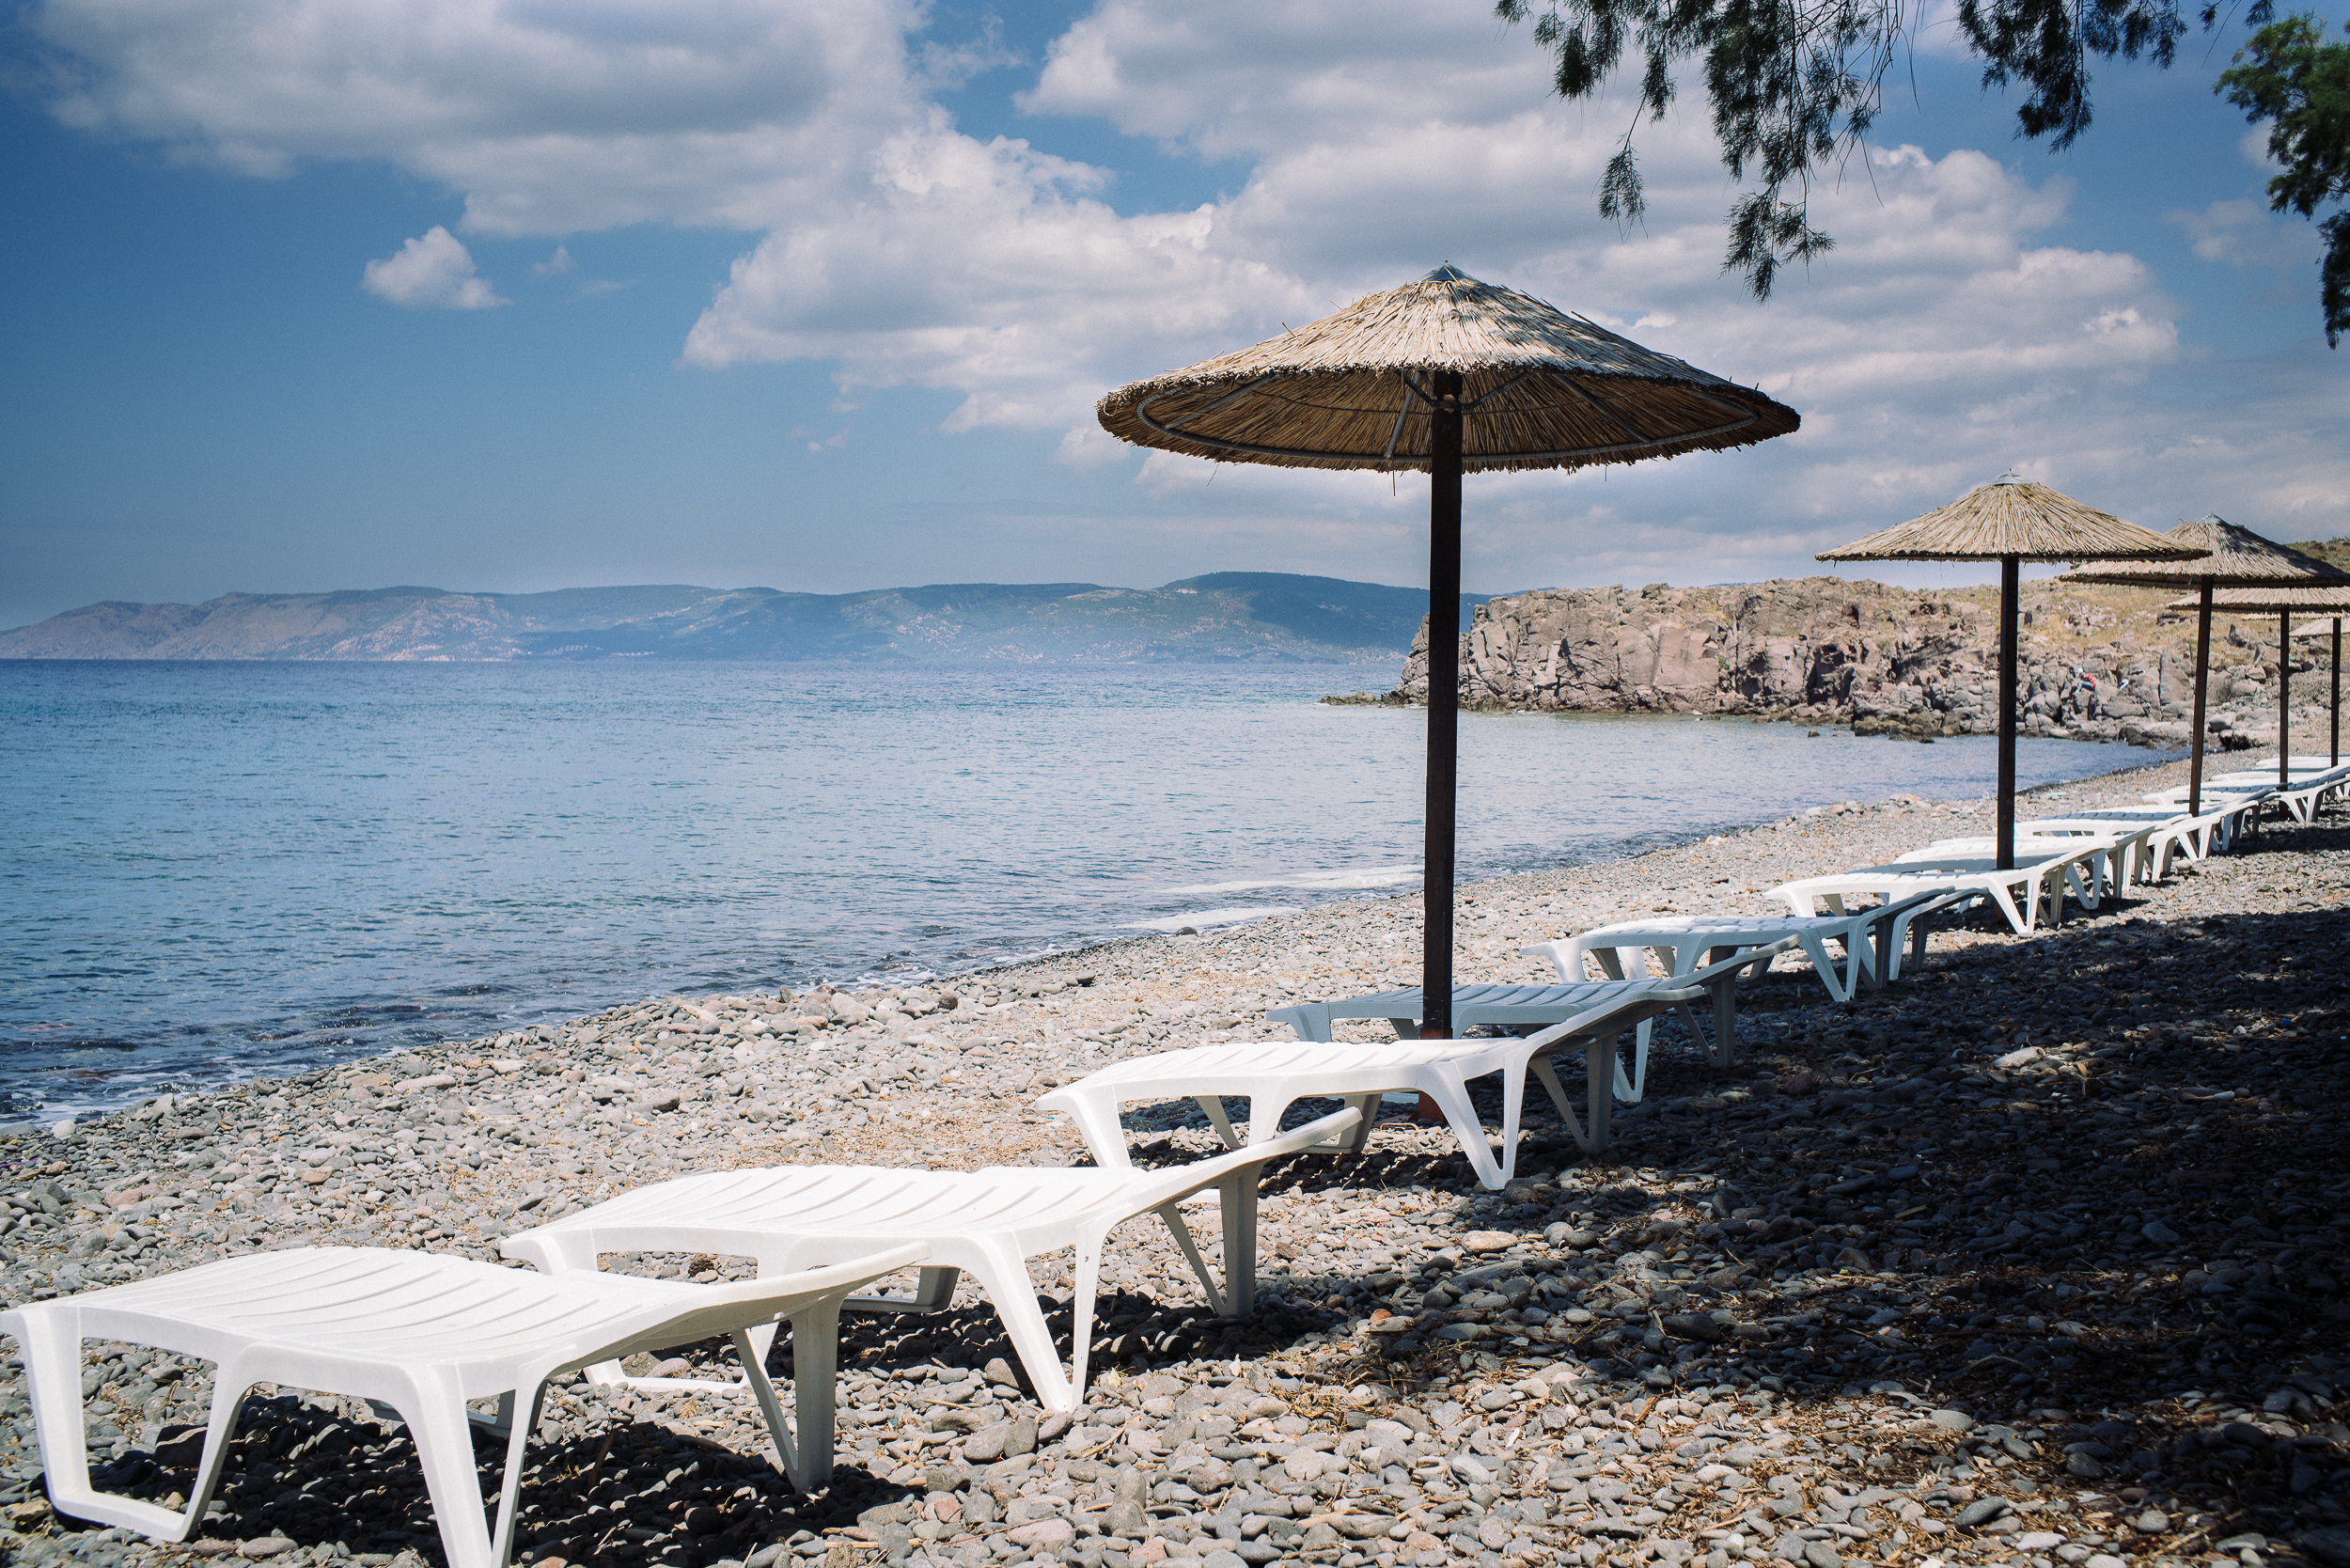 """The hotel's business took a hit after the media began reporting that the boat arrivals have landed on Aphrodite Hotel's private beach which is the closest point to Turkey that is on the other side of the Aegean. Despite that, Ms Aphrodite, the owner of the hotel, said, """"If we have to do it all over again, we would. There is no doubt about it at all."""""""